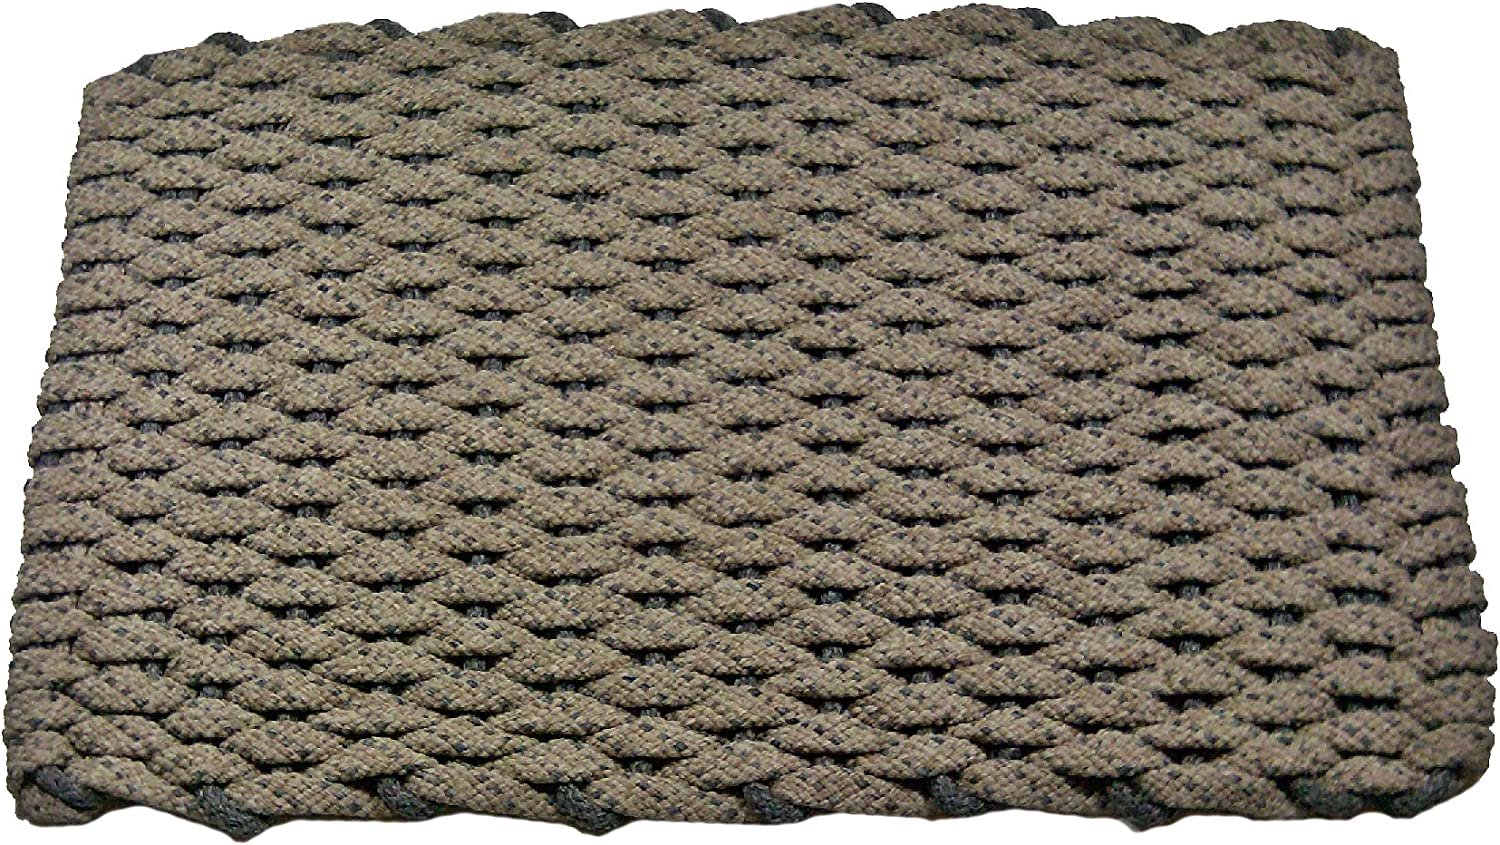 Rockport Rope Doormats 2038225 Kitchen Comfort Mats, 20 by 38-Inch, Tan with Two Brown Stripes with Brown Insert